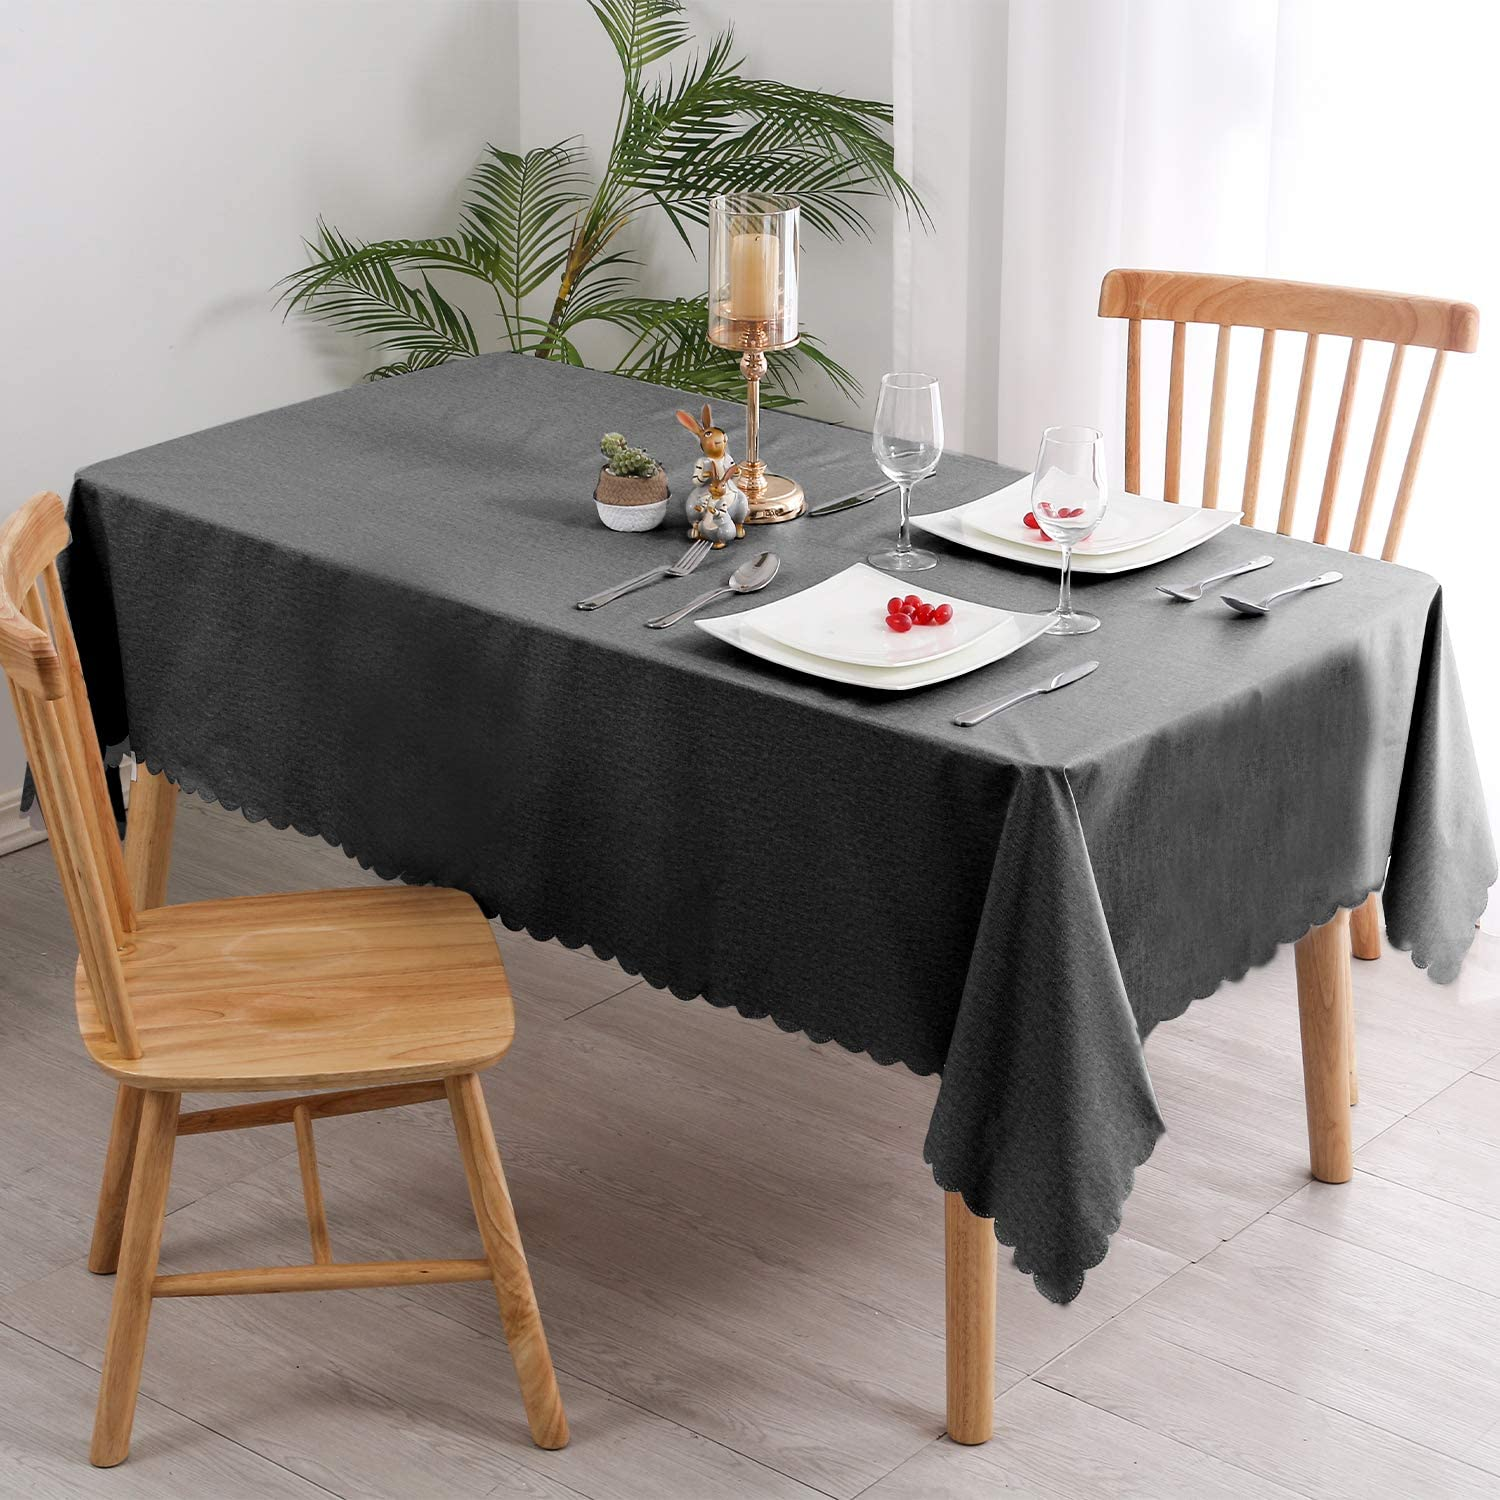 54 x 54 Inch 100/% Waterproof Oilproof Stain Resistant Wipeable Transparant Vinyl Table Cloth Protector Hiasan Clear Plastic Tablecloth Square